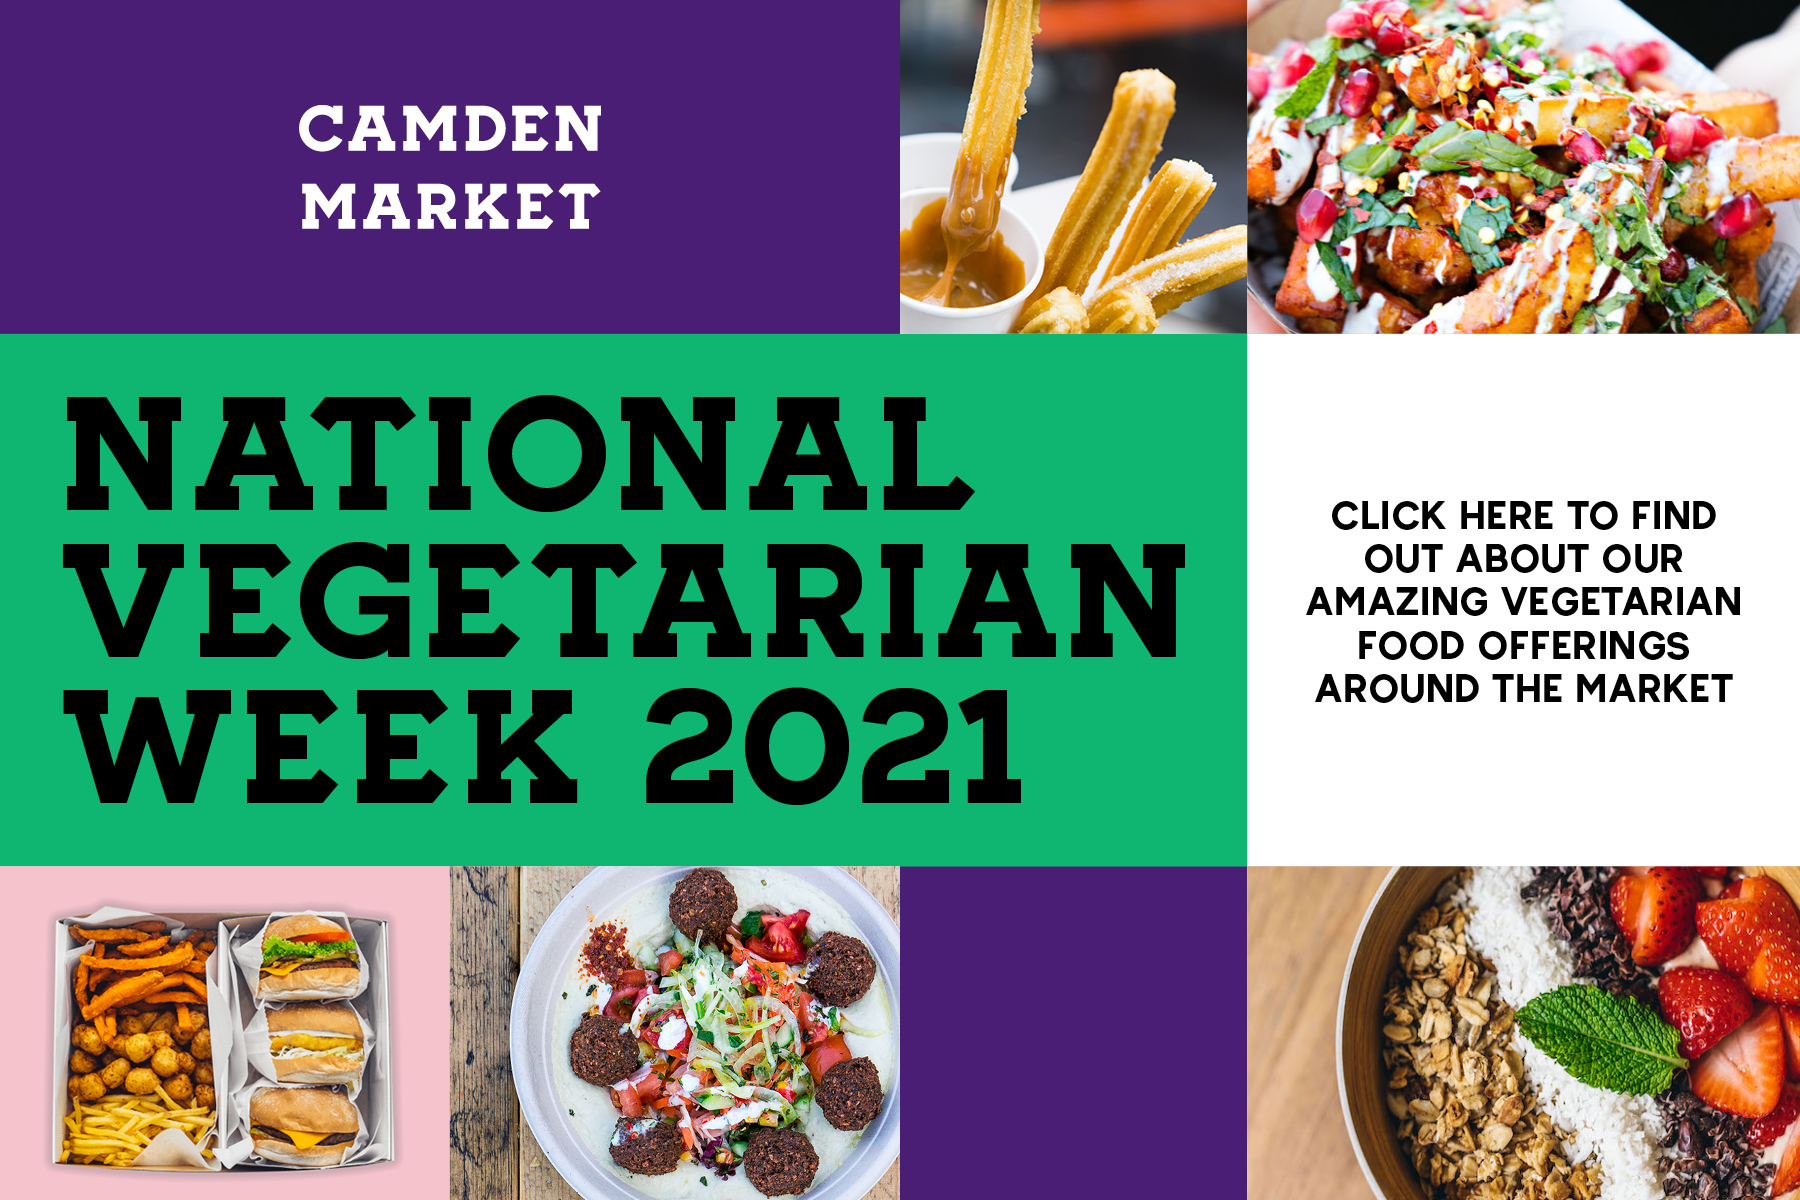 CM_National-Vegetarian-Week_desktop_v1